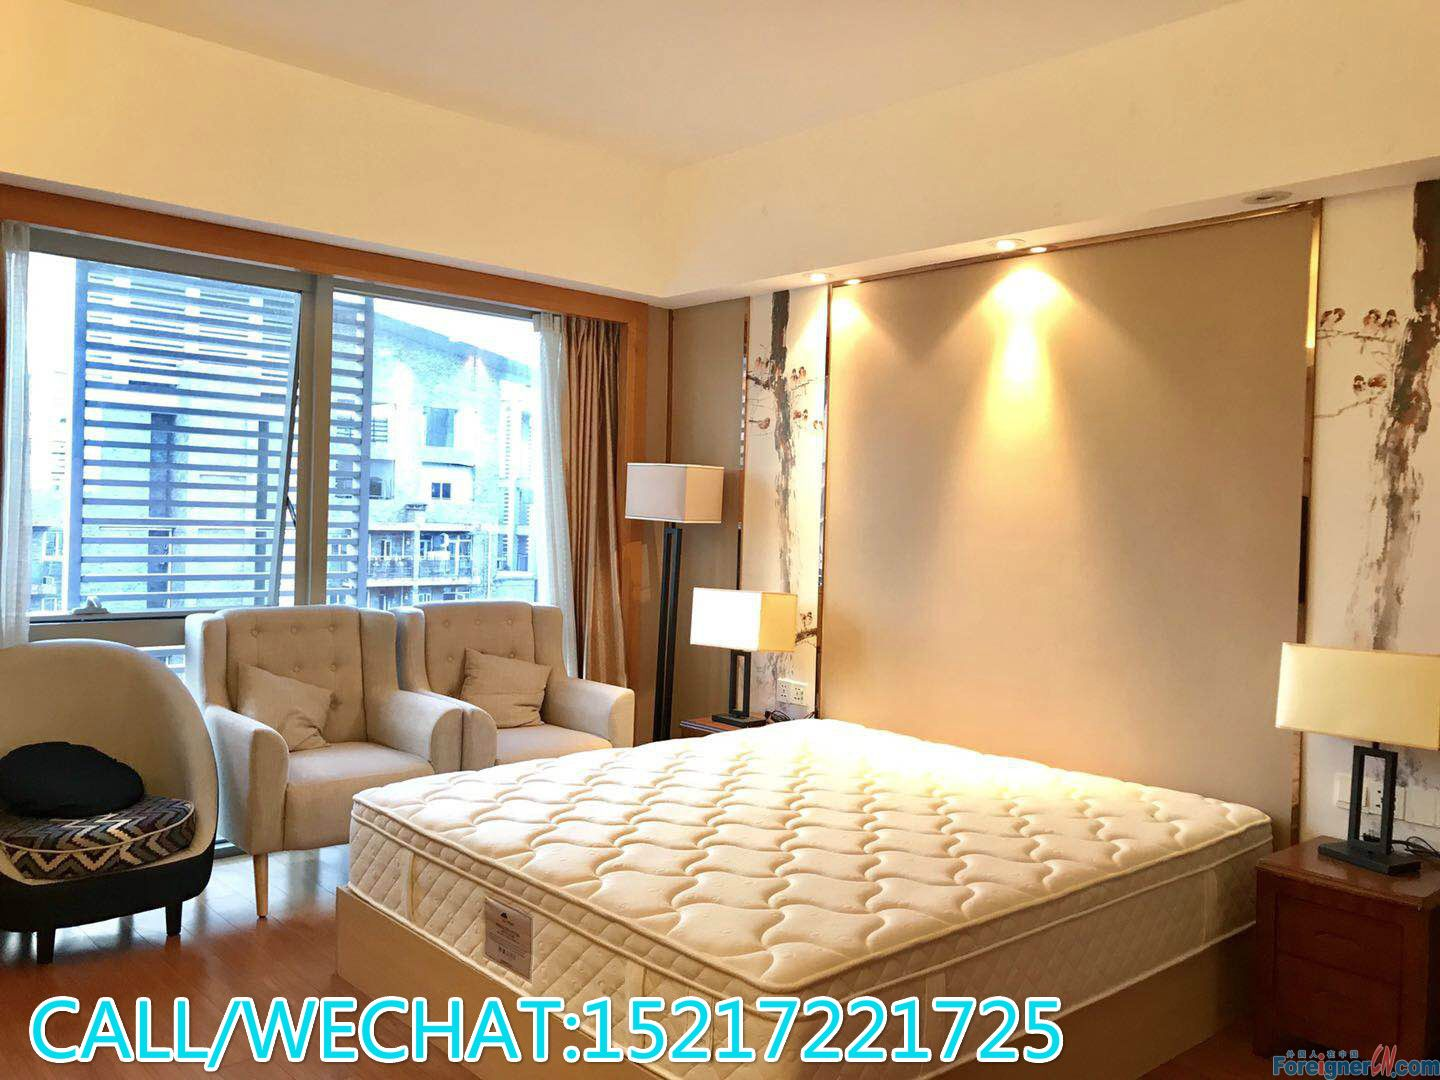 Leidon Sunshine-Big studio in CBD area,fully furnished,almost new,good location,convenient